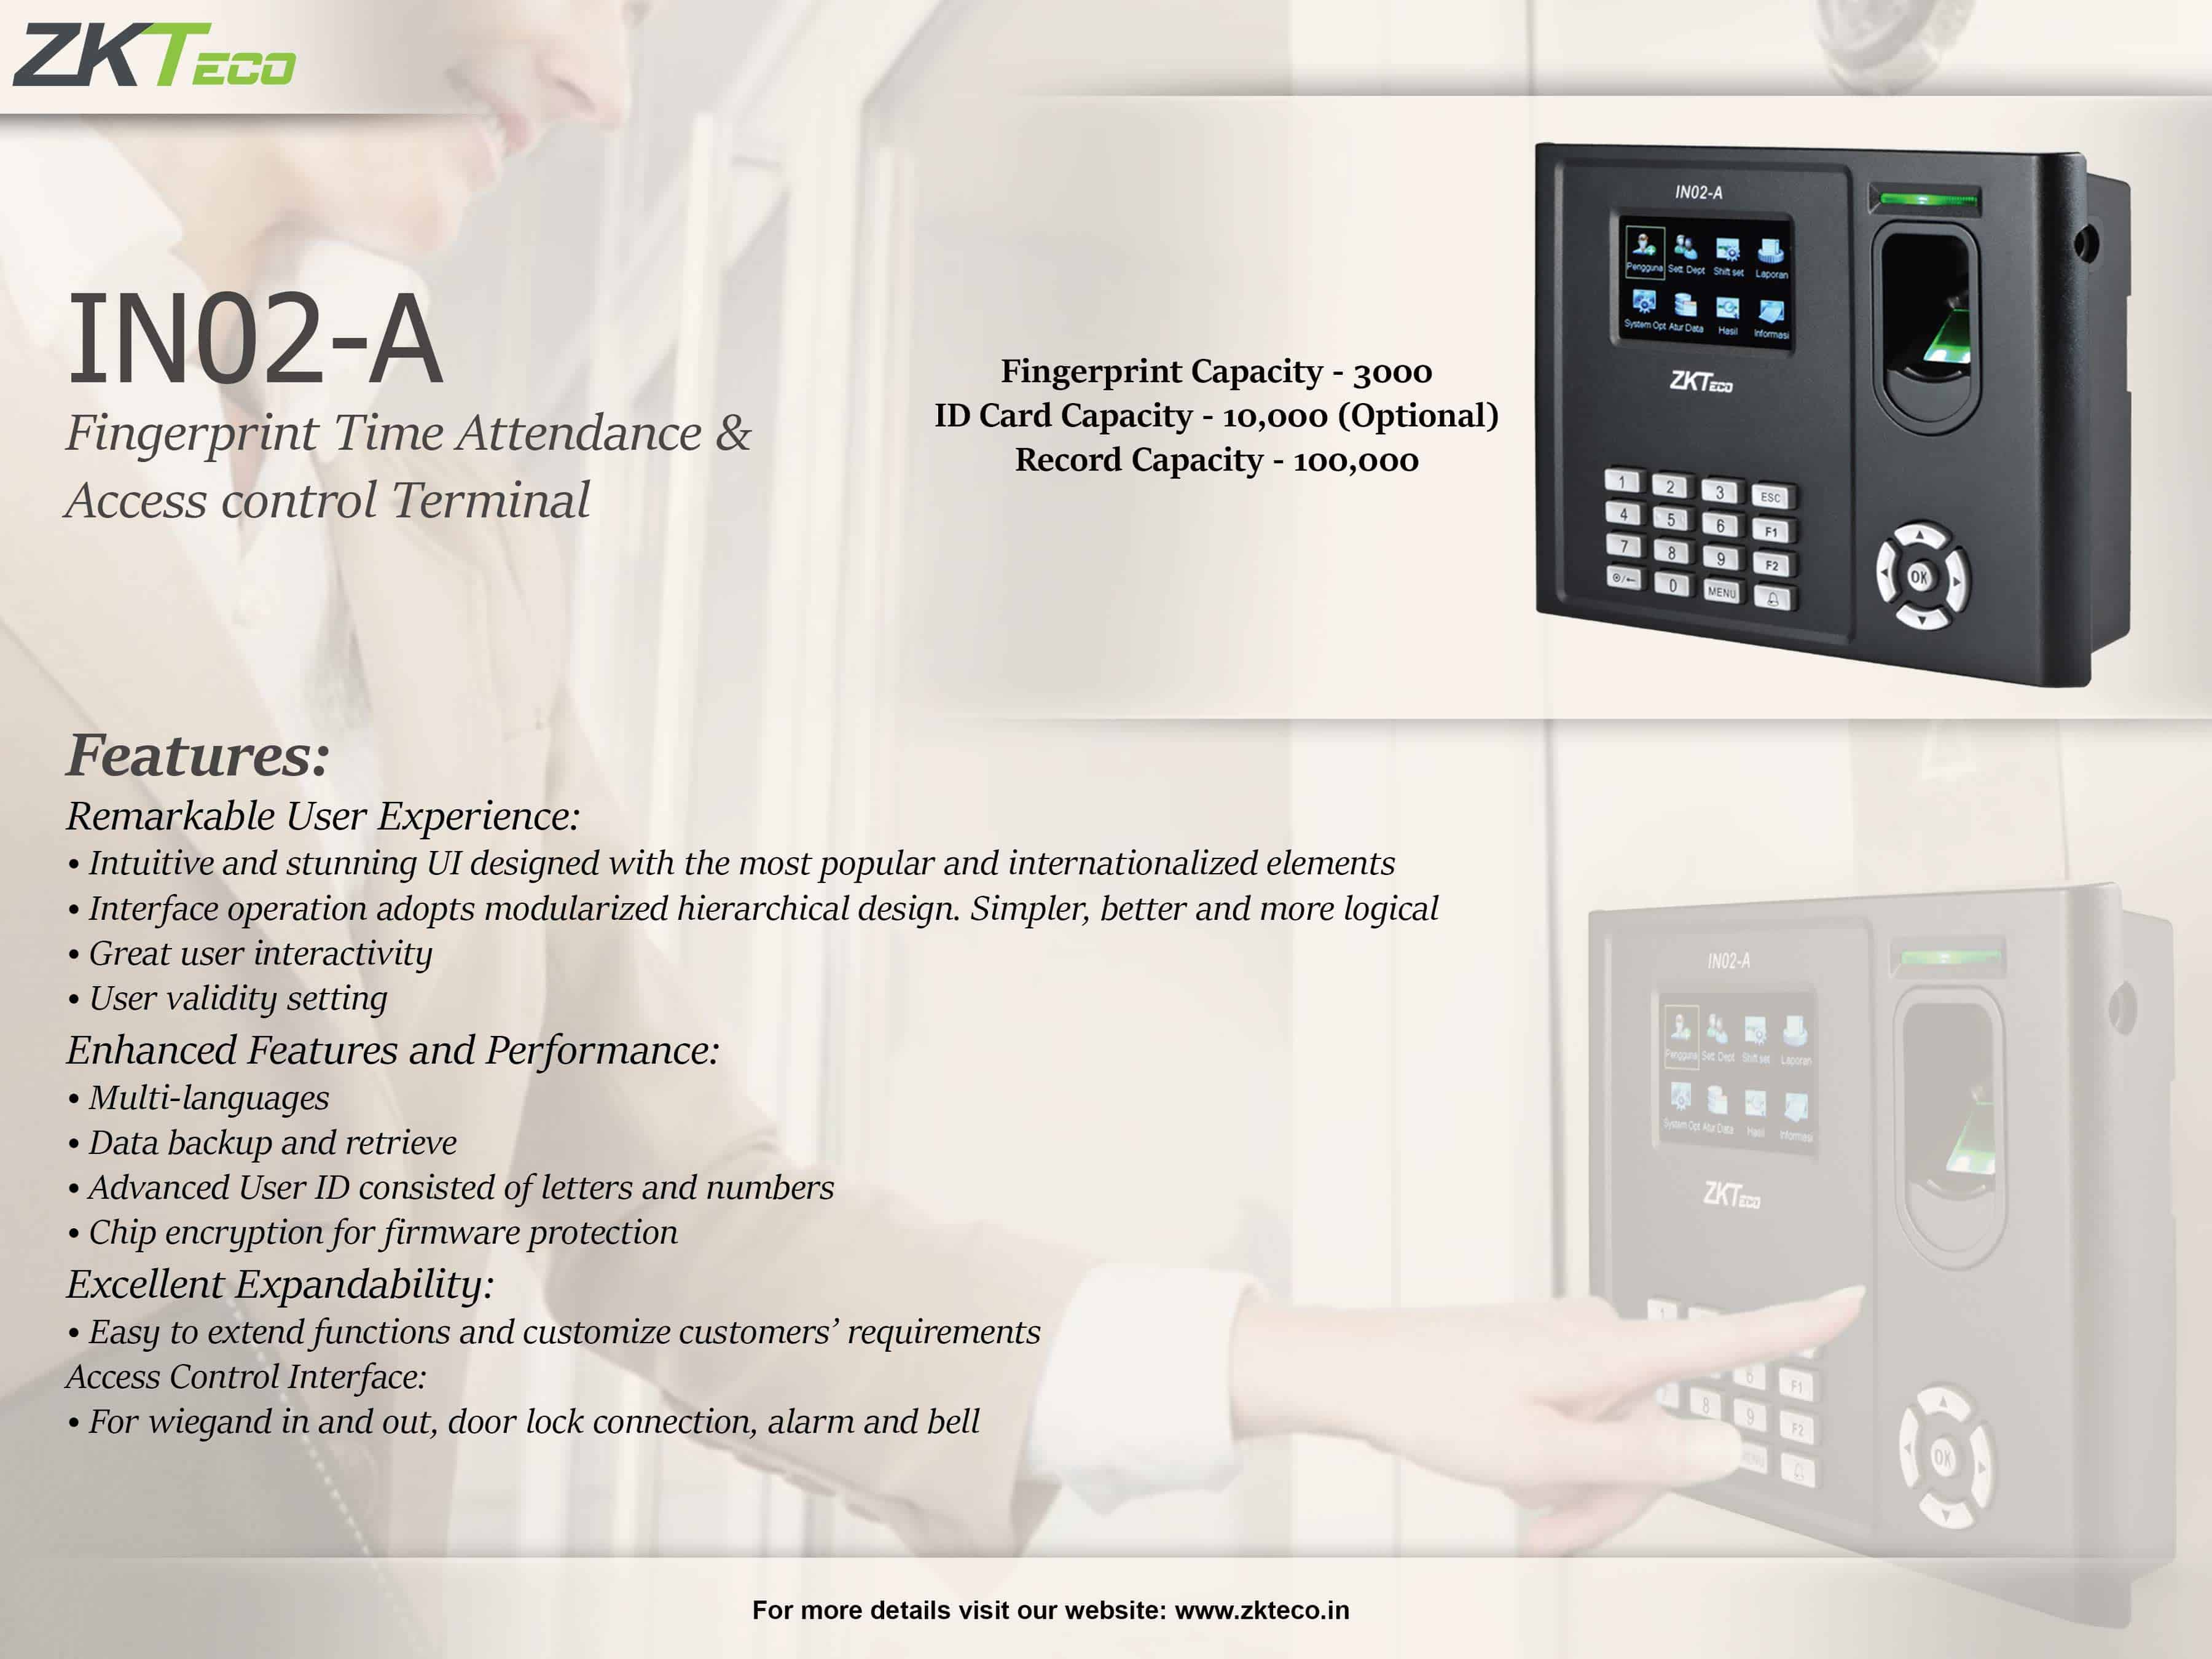 ZKTeco's Fingerprint Time Attendance and Access Control Terminal